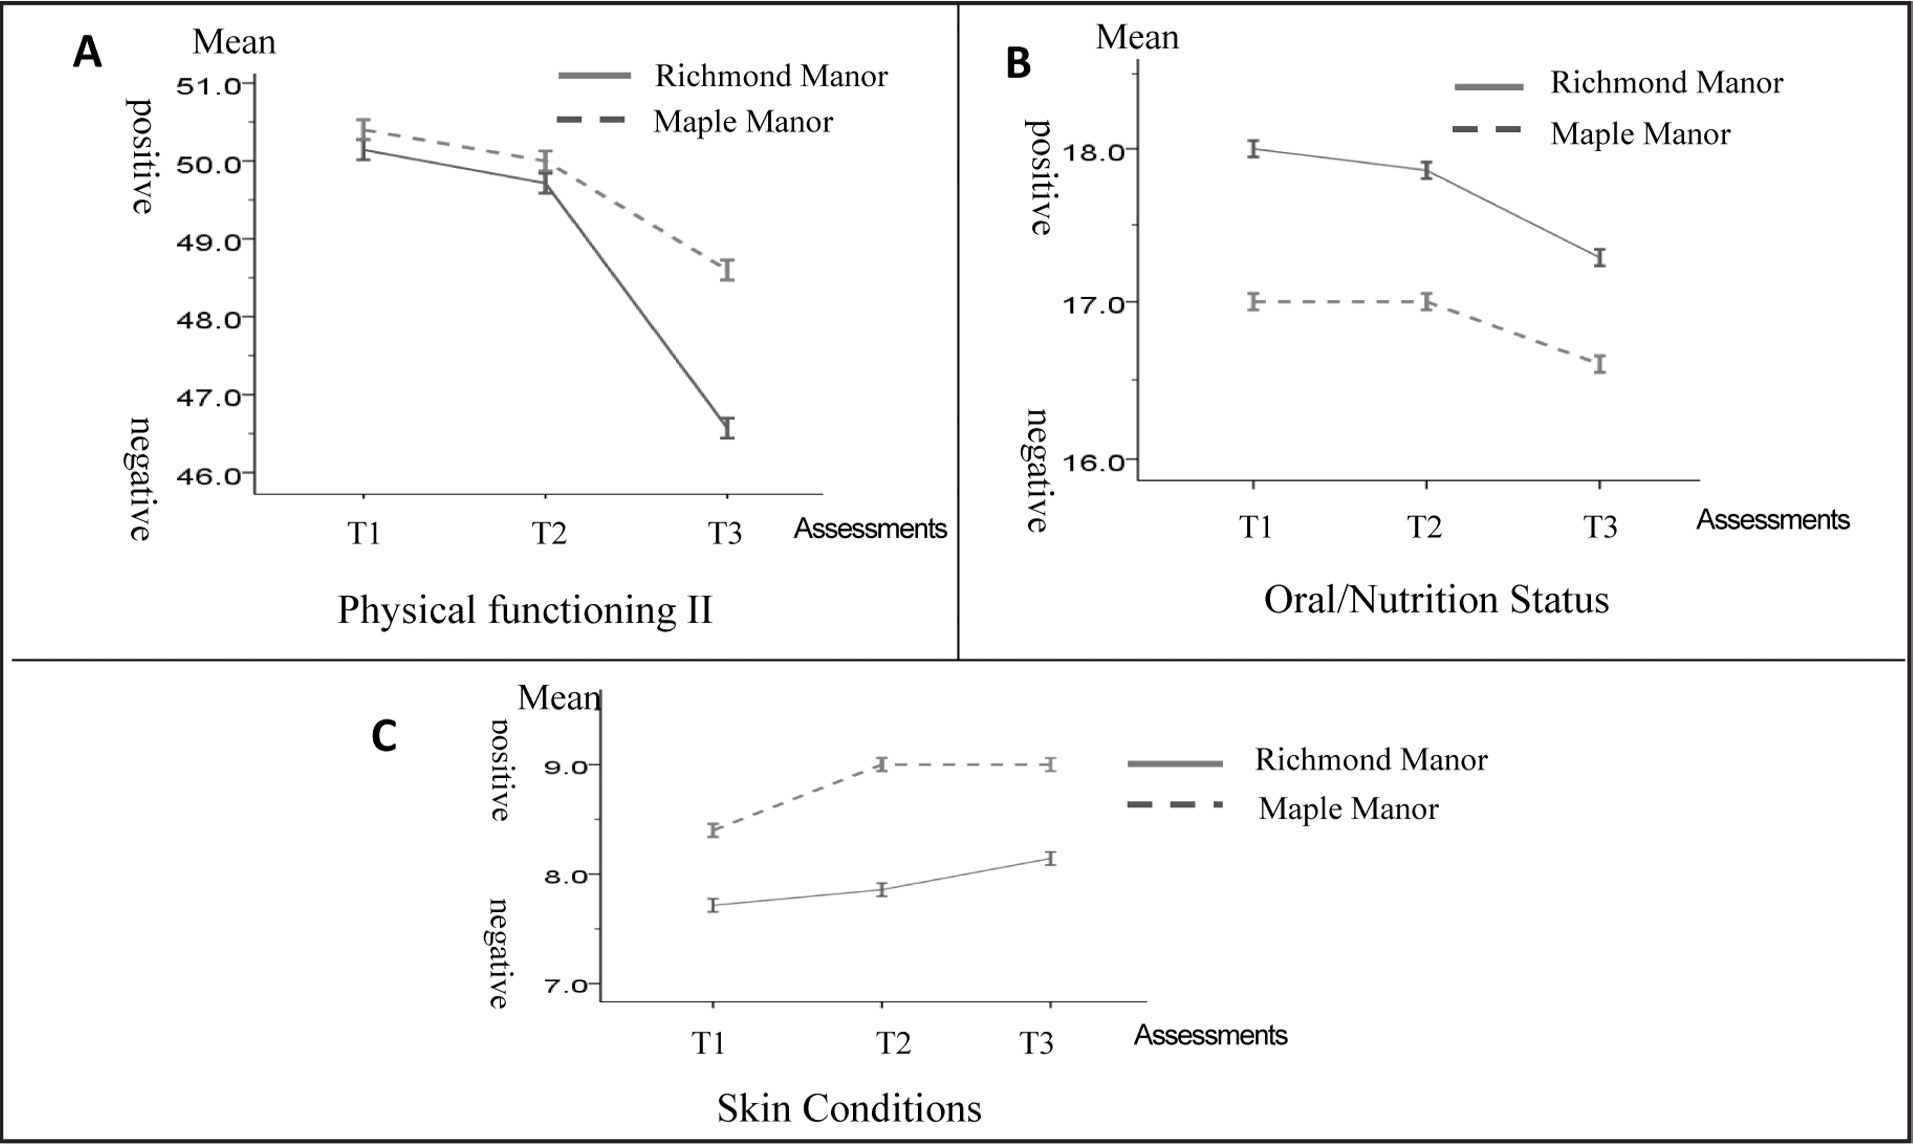 Results of the repeated measures analysis of variance on the Minimum Data Set. A. Physical functioning II (i.e., bathing, balance while standing and sitting, and modes of locomotion and transfer): F2,10 = 6.27**; B. Oral/nutrition status: F2,10 = 11.75‡; C. Skin condition: F2,10 = 16.66‡. **p < 0.01, within-unit comparisons; ‡p < 0.01, between-unit comparisons.